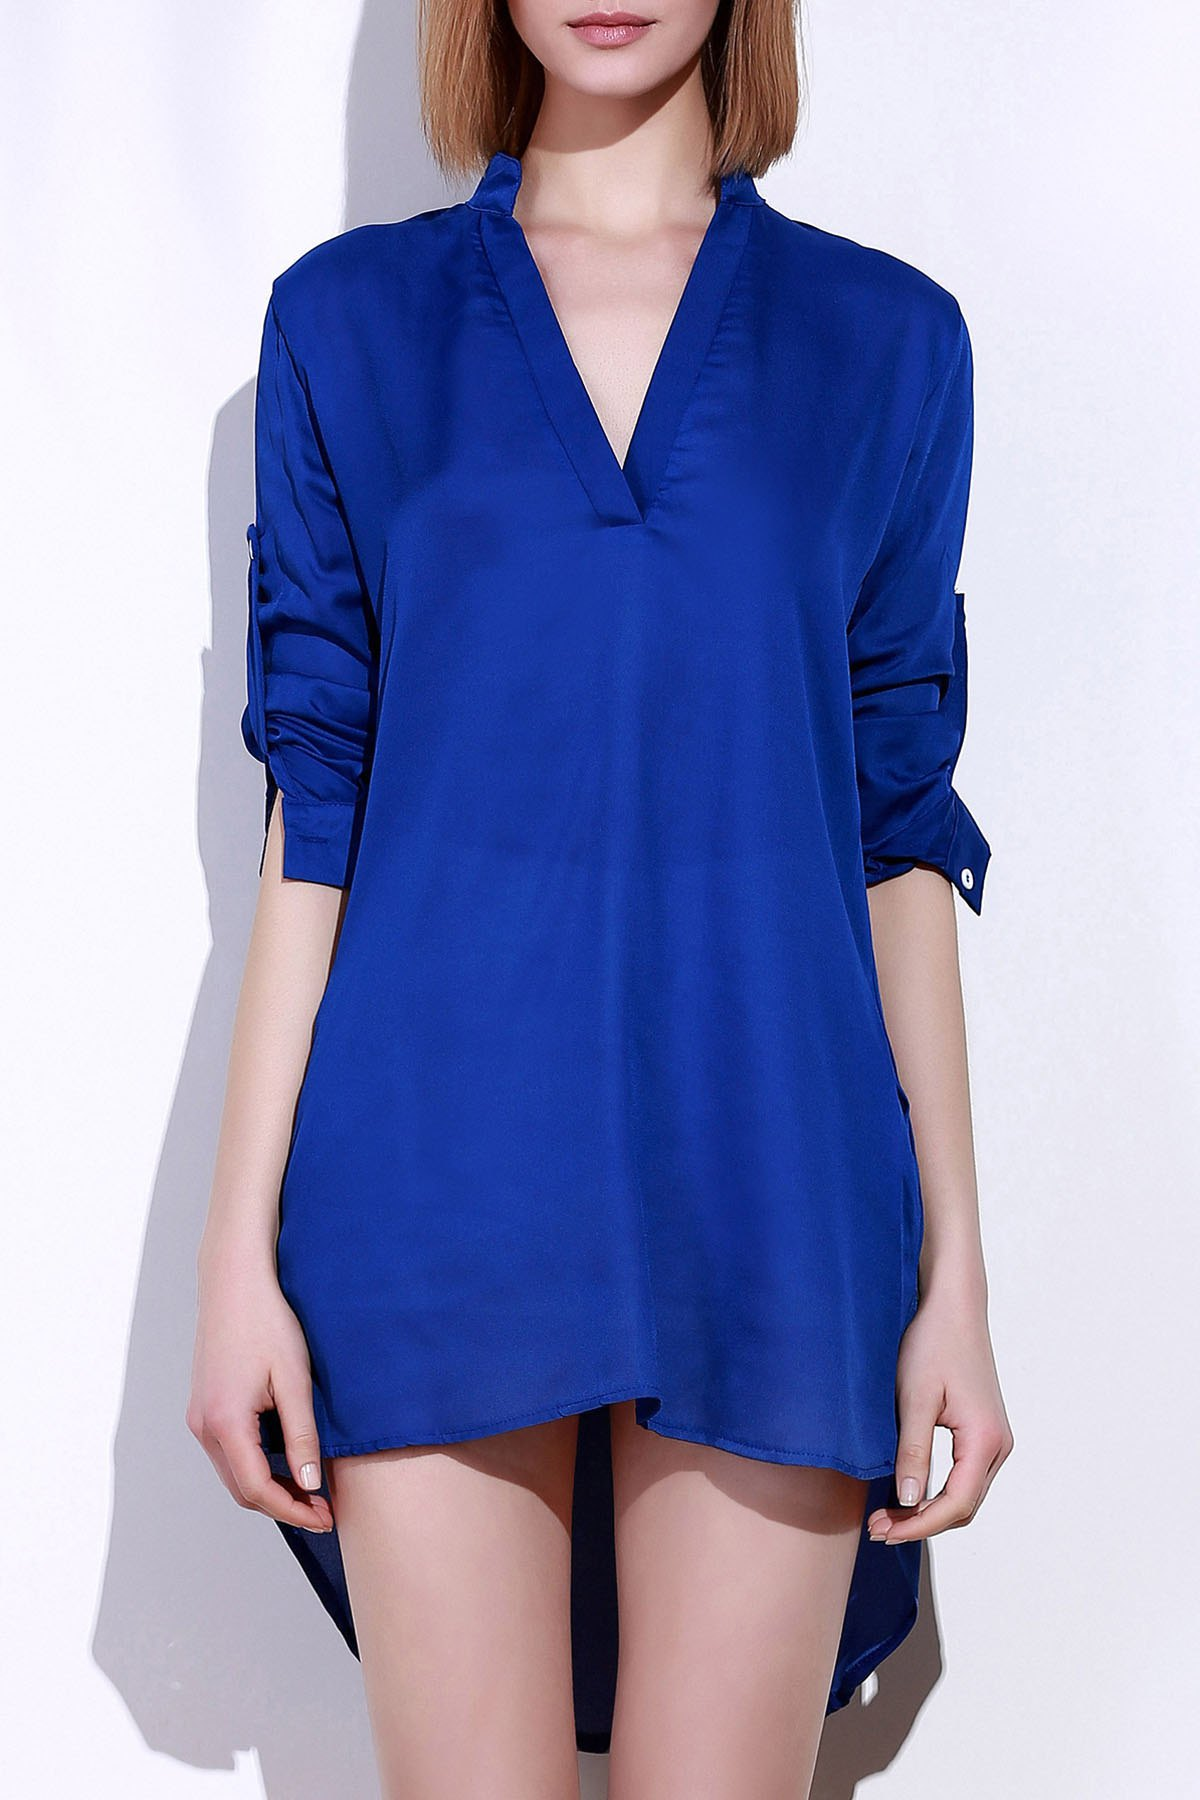 Long Sleeve Plunging Neck Loose-Fitting Solid Color Women's Blouse